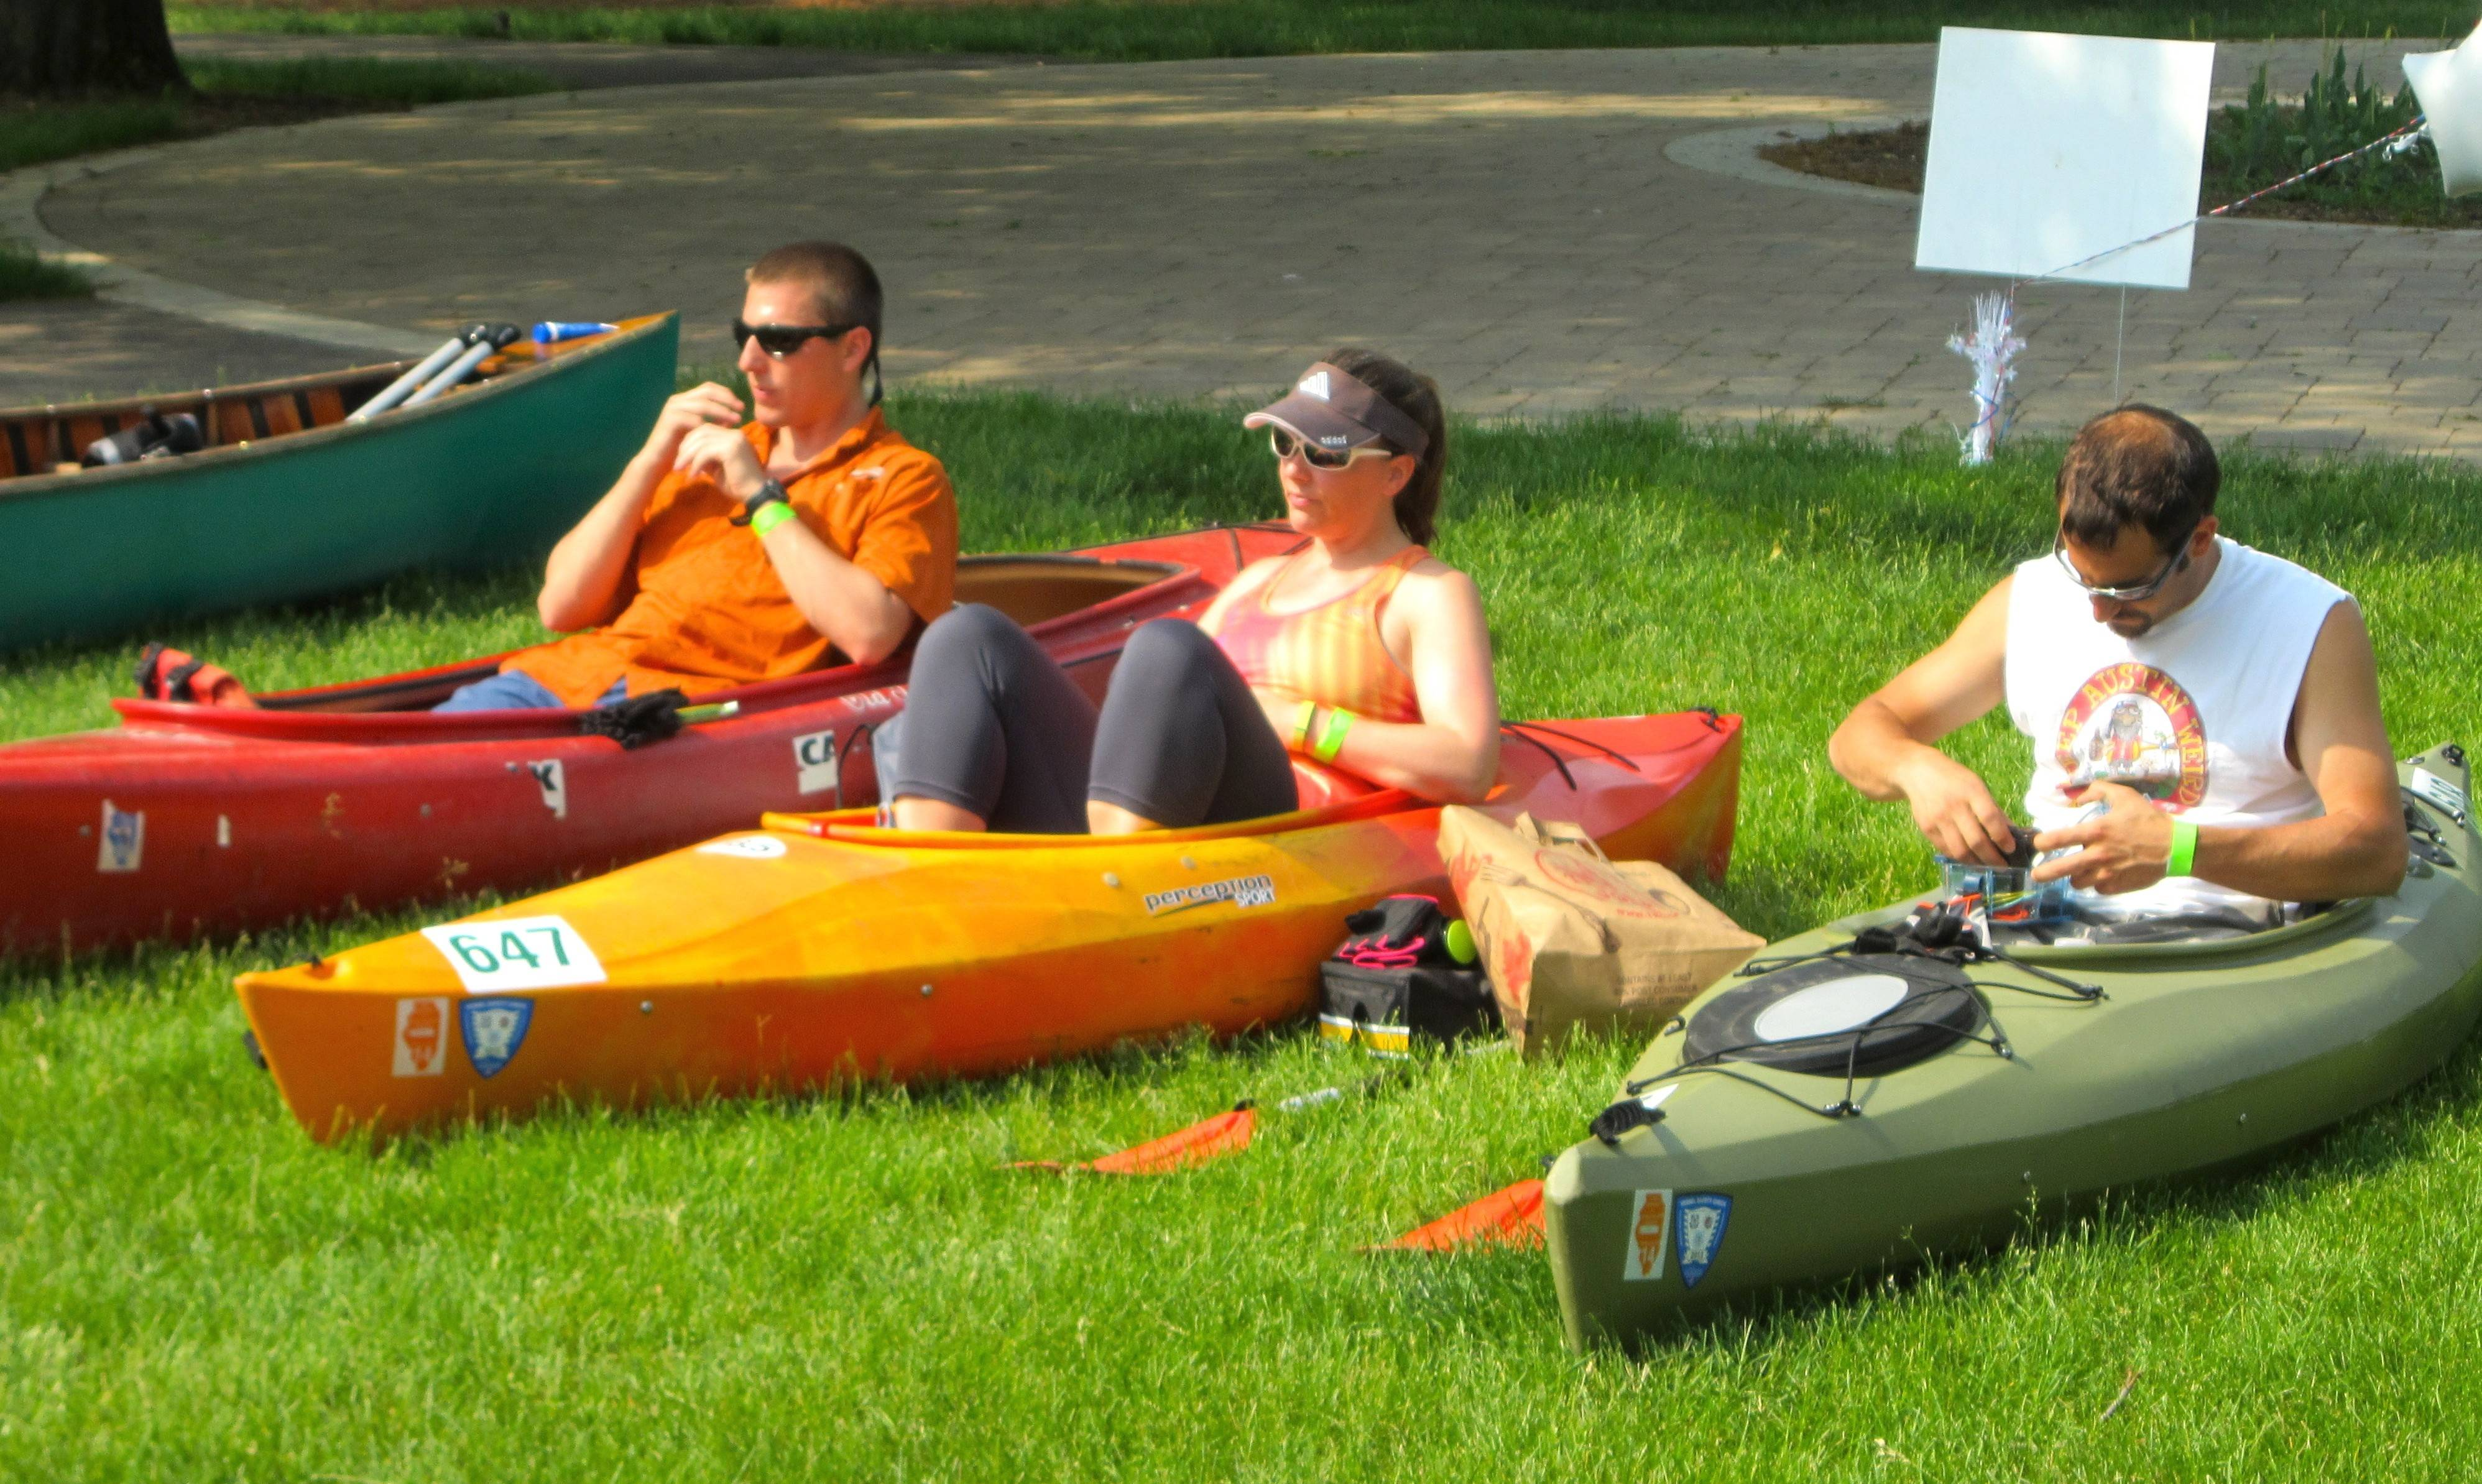 Anthony Bentivegna, left, Michelle Wilson and Joe Catella wait for their chance to do some kayaking Sunday in the 53rd annual Mid-American Canoe and Kayak Race, organized by the Fox Valley Park District.